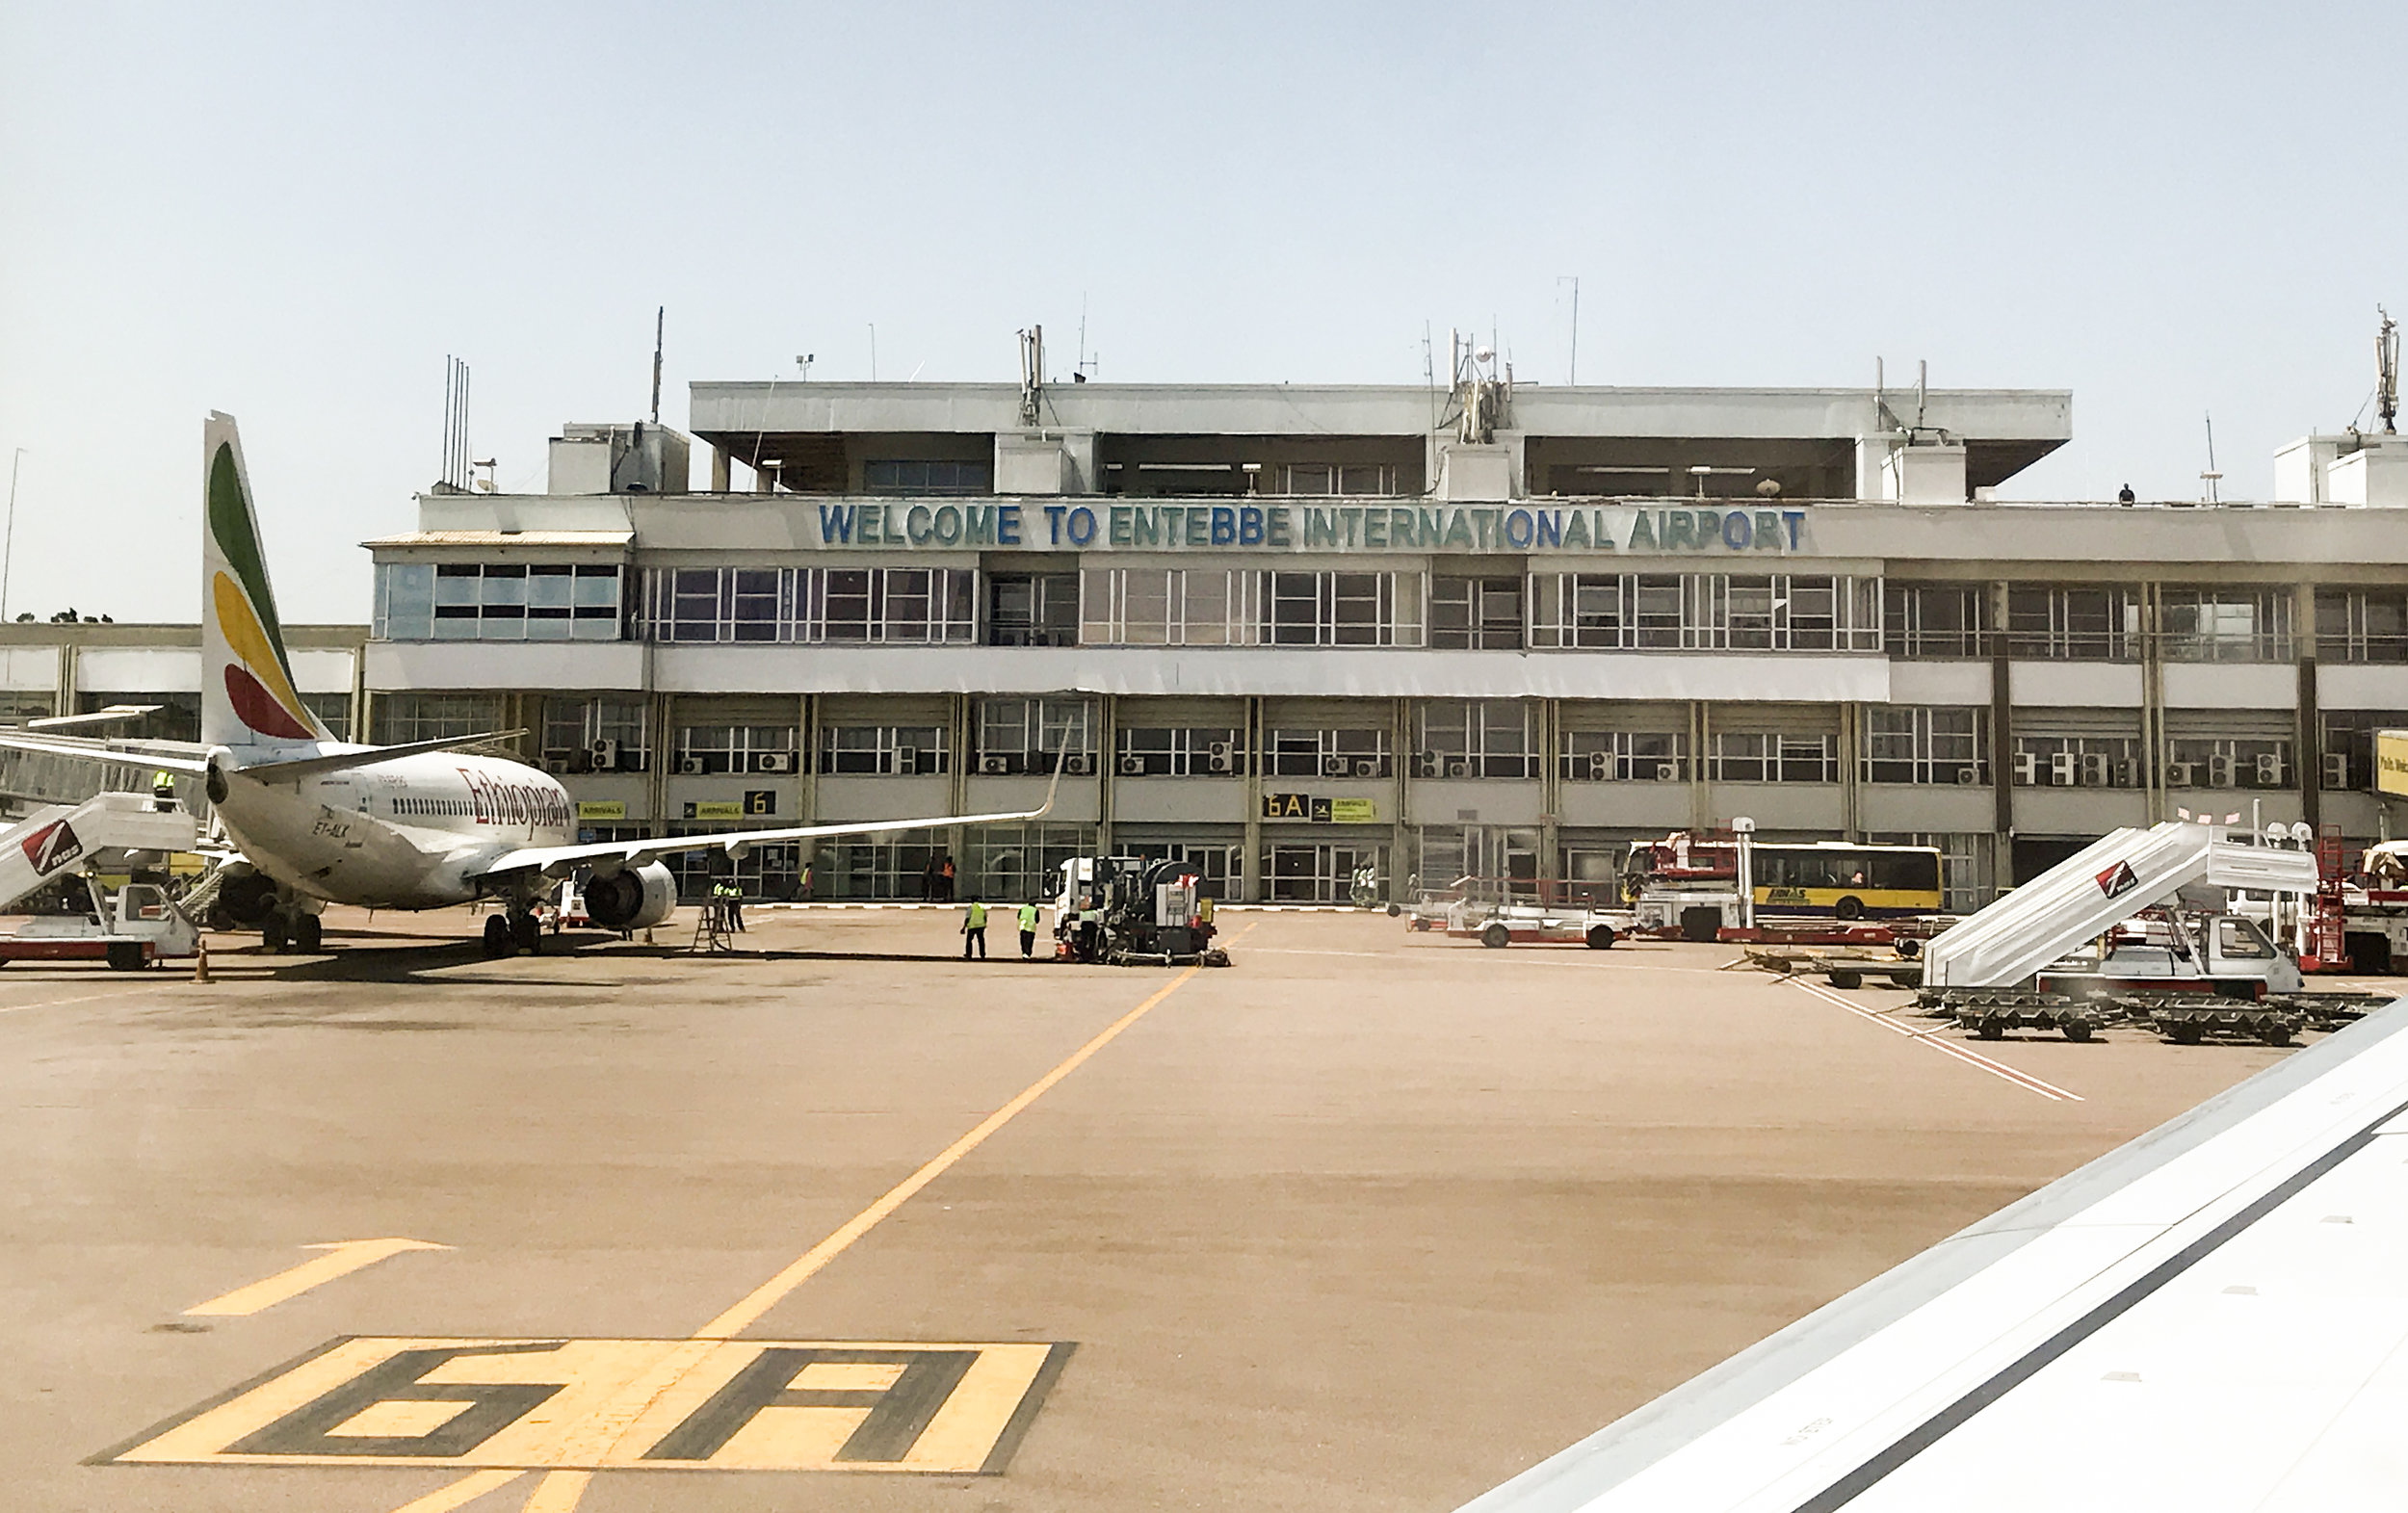 Cell Phone shot of touchdown at Entebbe International Airport in Uganda